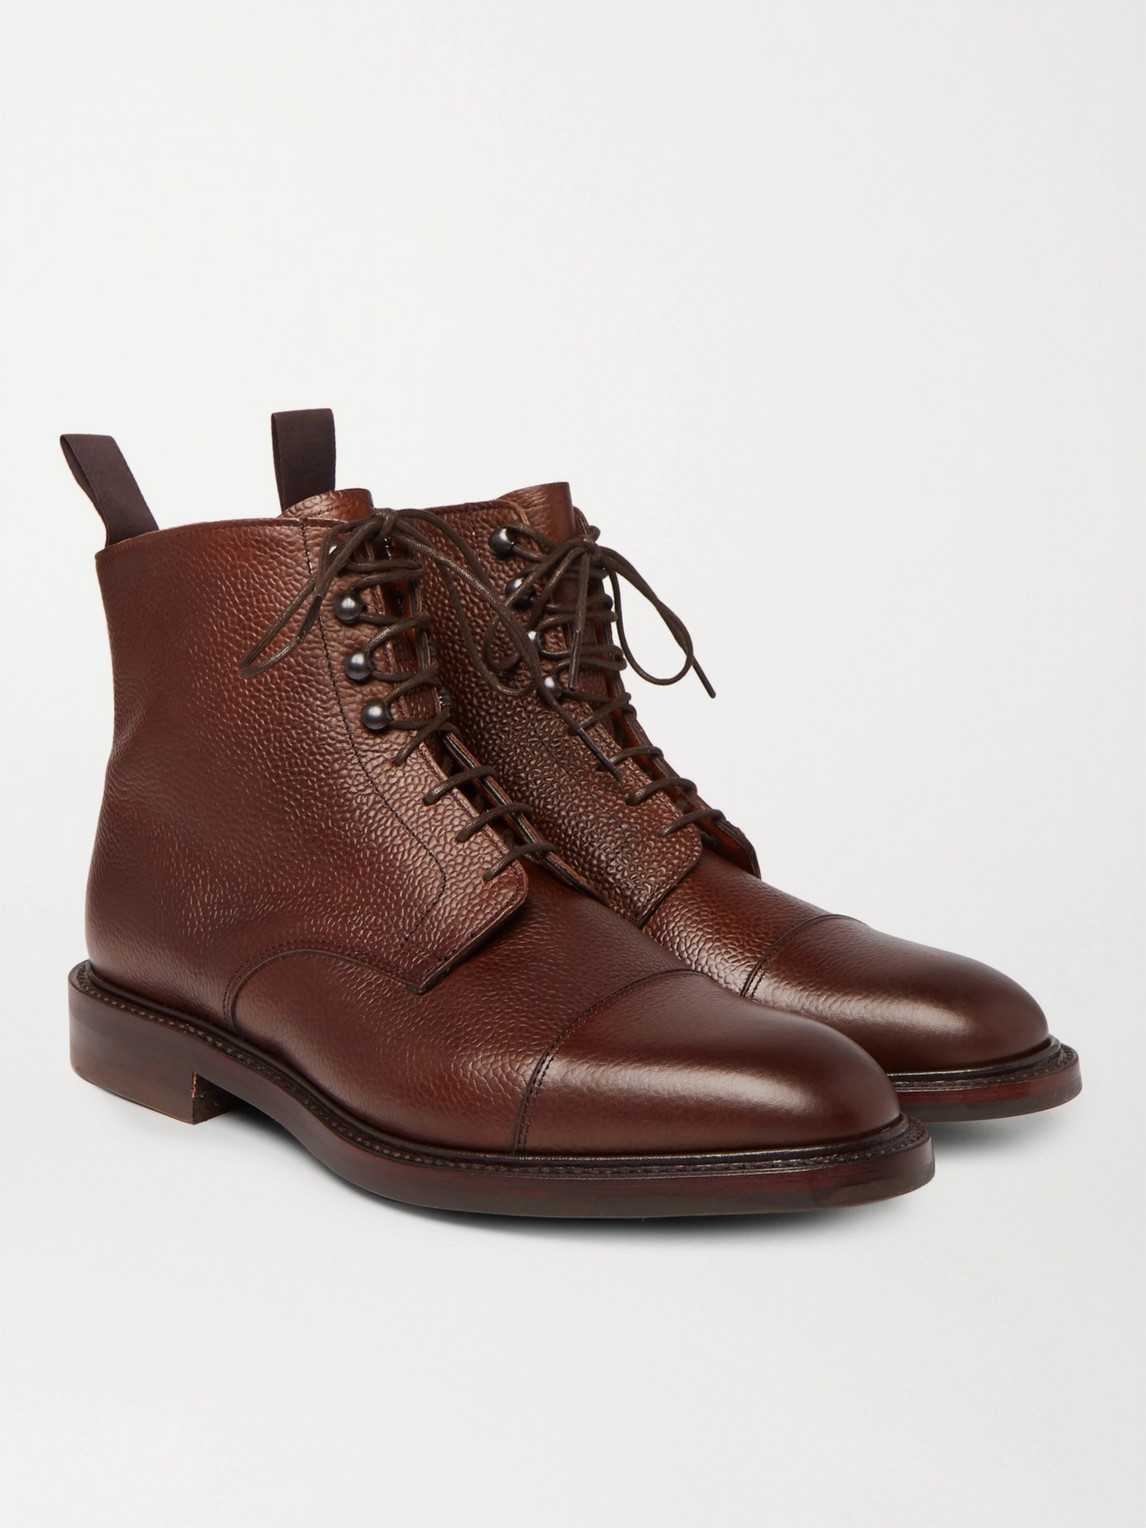 Kingsman George Cleverley Cap-toe Pebble-grain Leather Boots In Brown